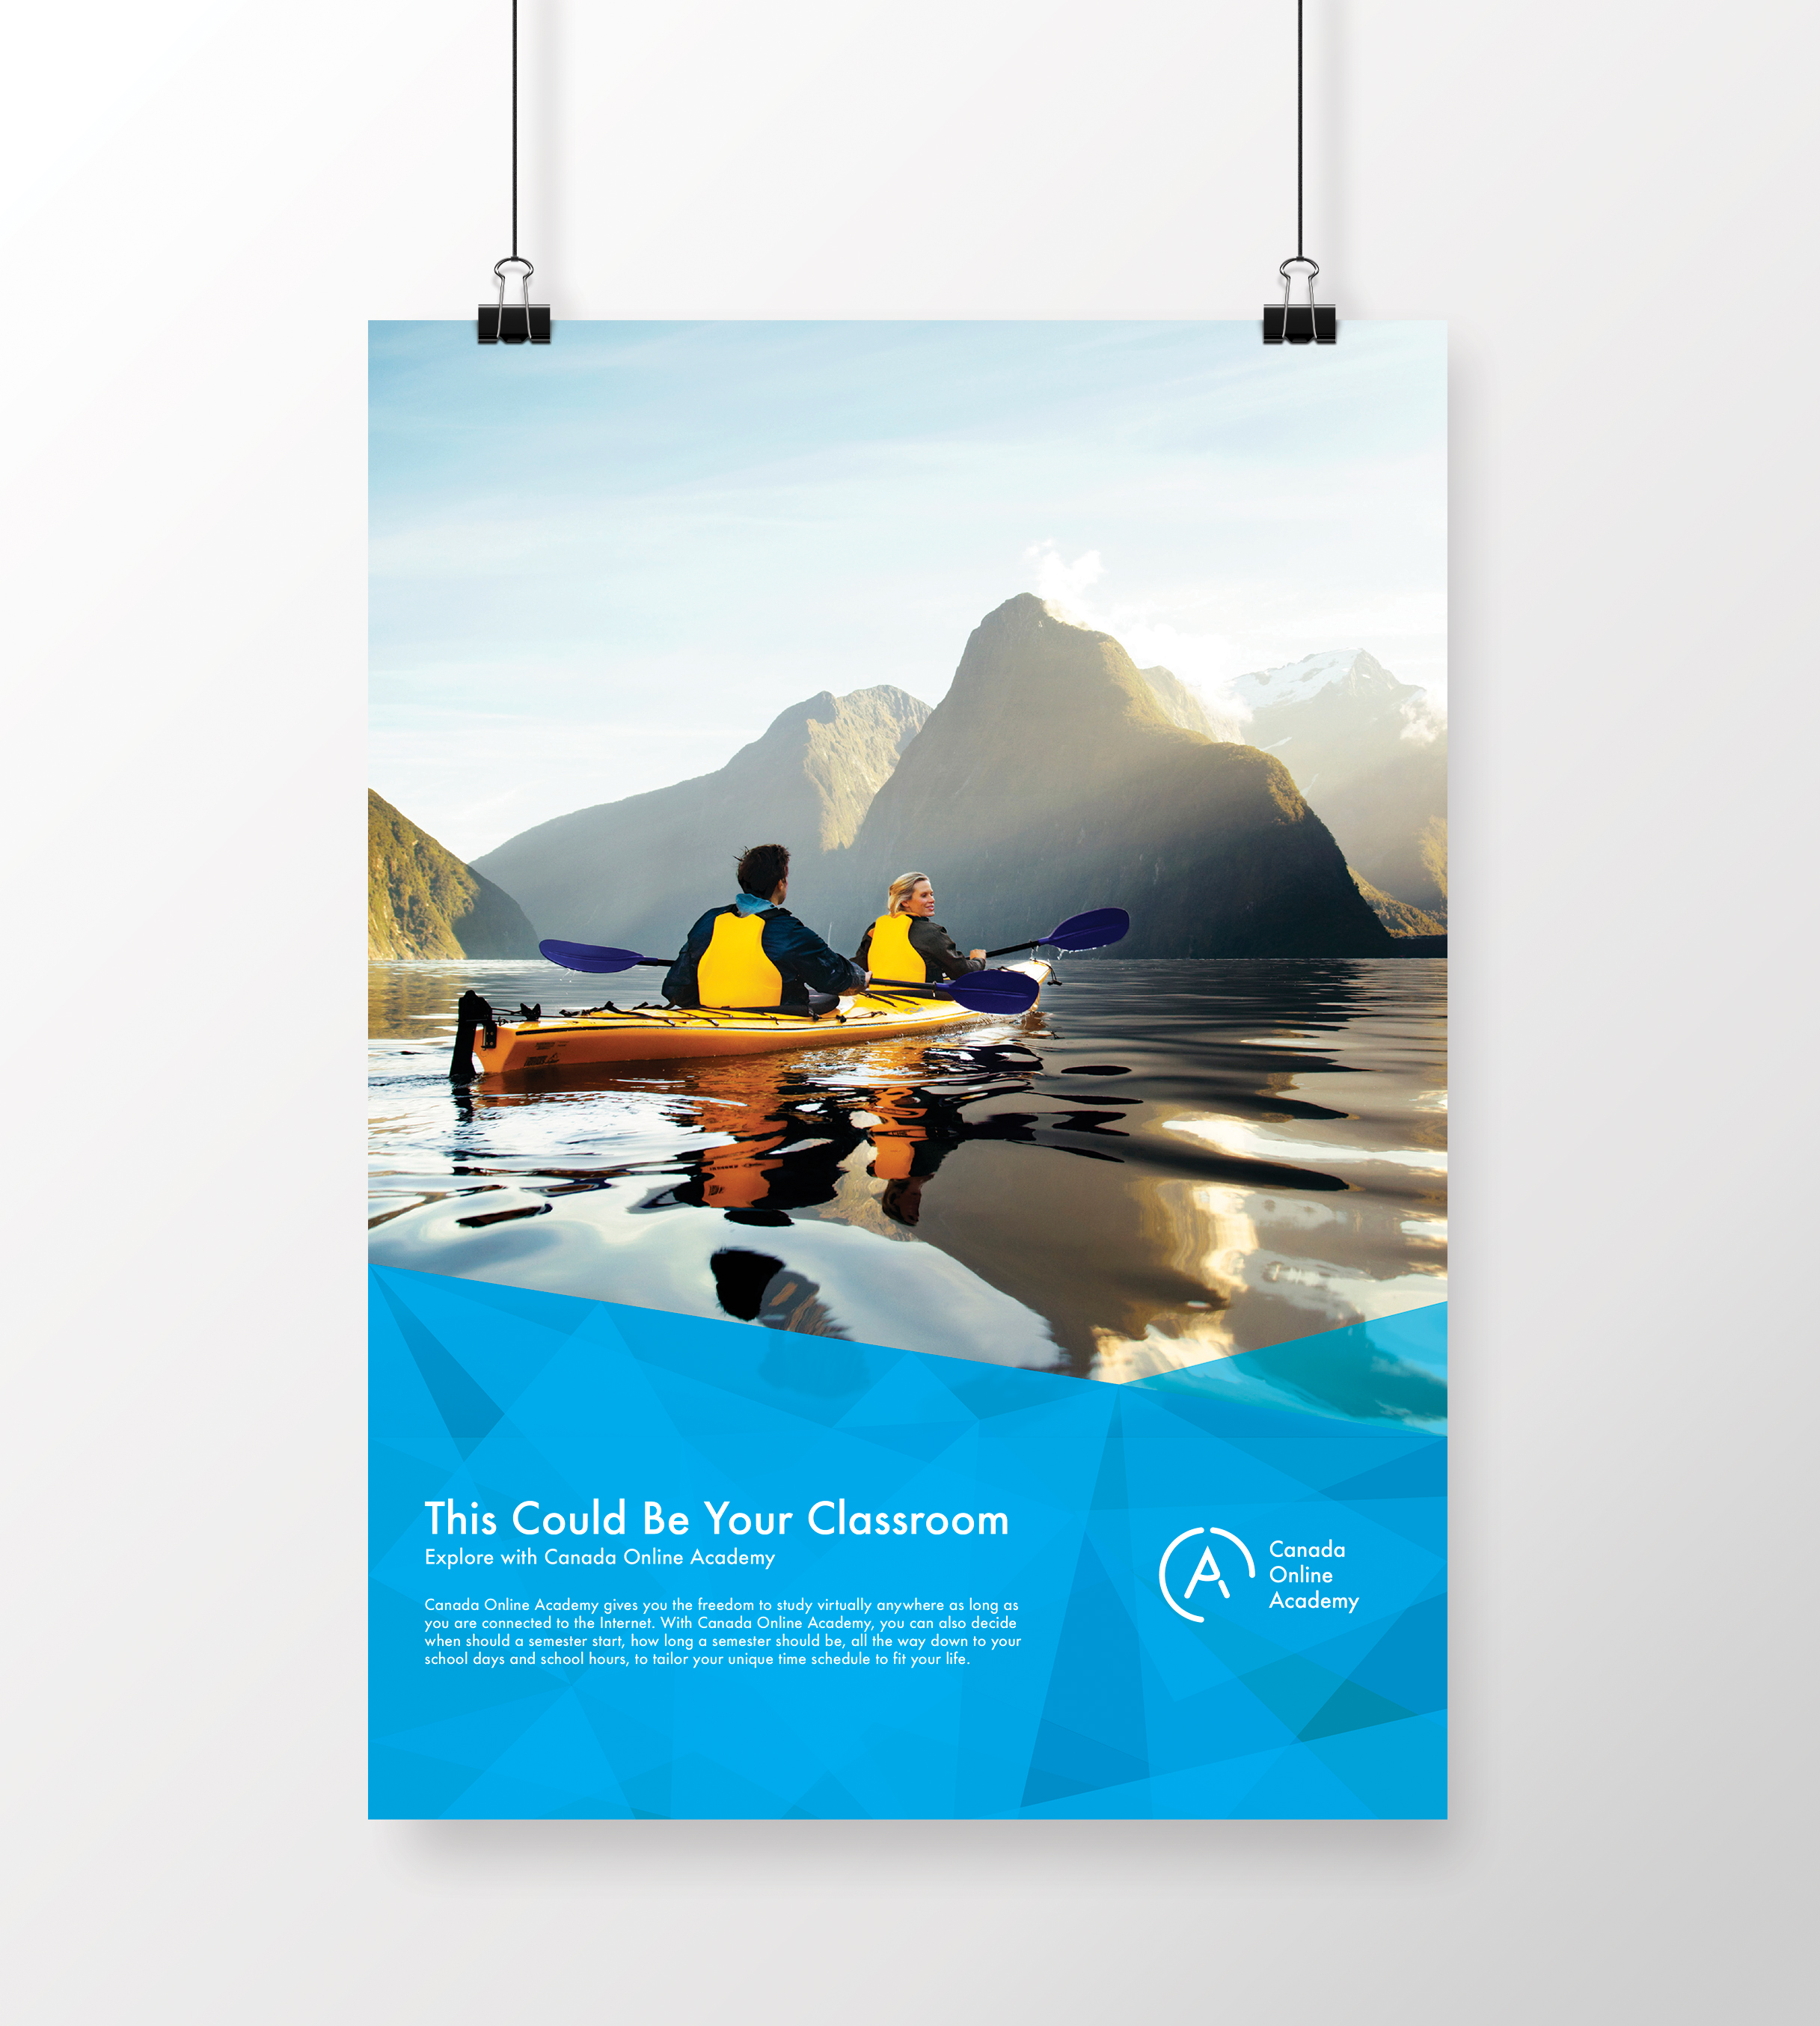 *Photo used in the poster merely represents a proposed visual direction, it was not used in actual advertisement.